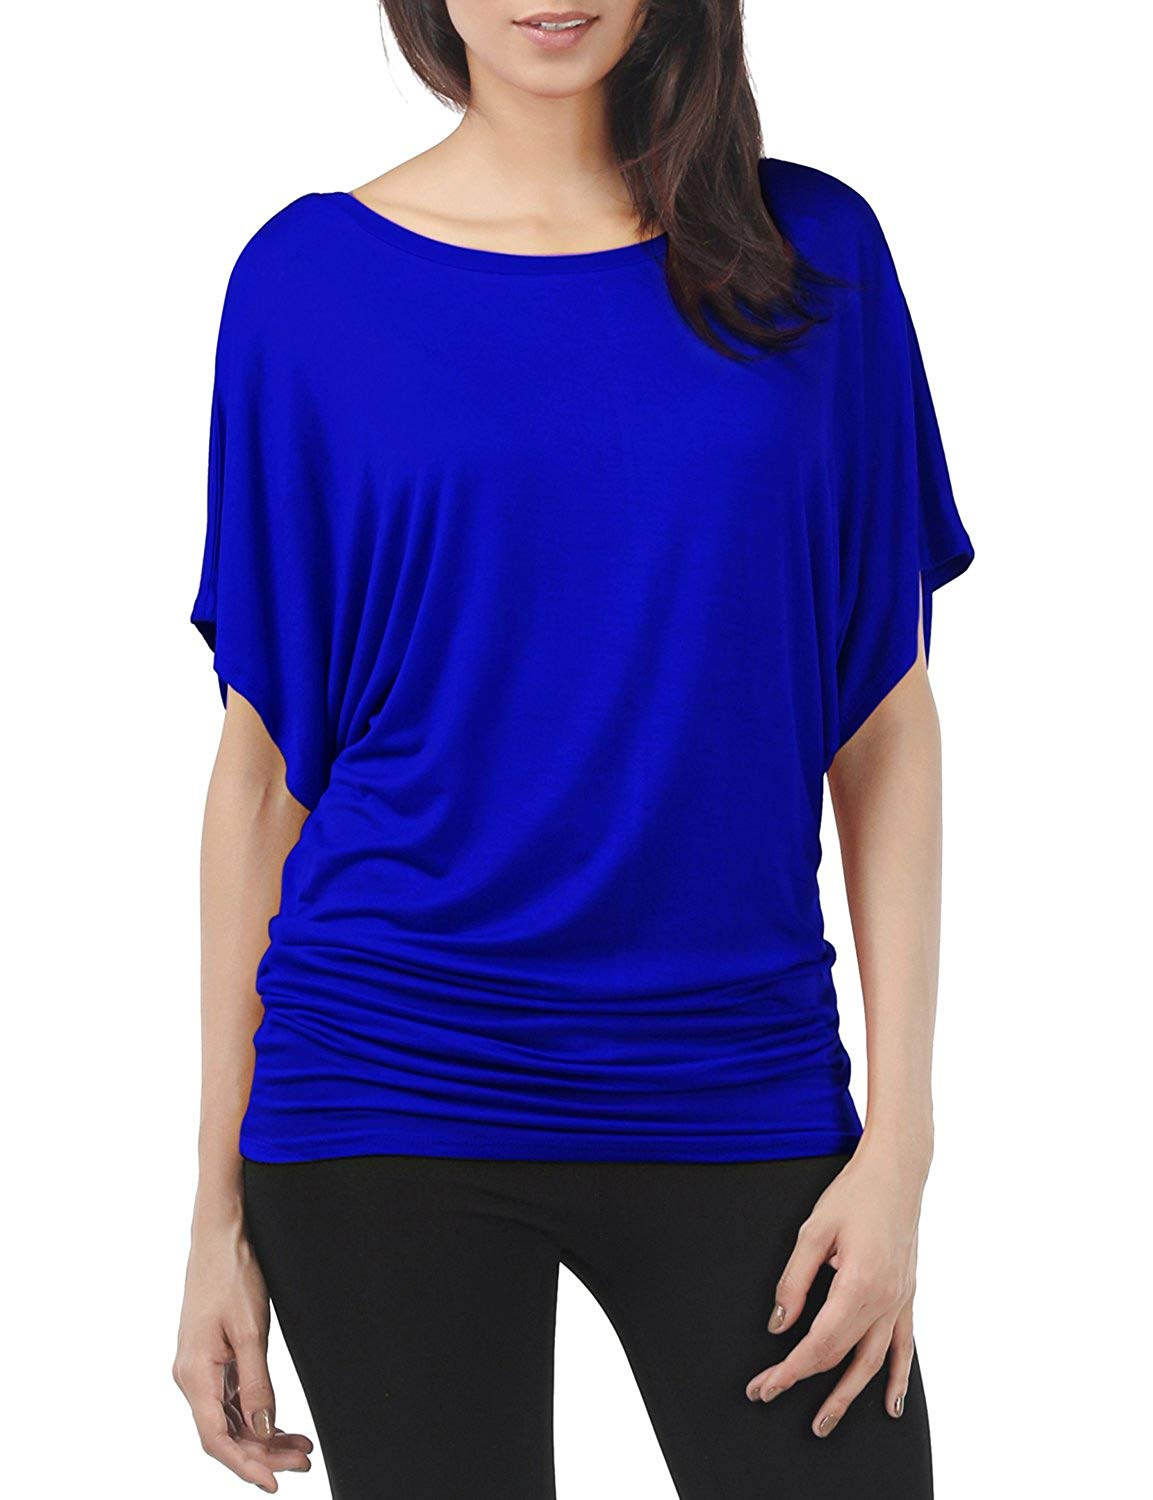 214db1925db Get Quotations · TWINTH Shirring Tunic Top Plus Size Dolman Sleeve Drape  Knit Top Boat Neck Solid